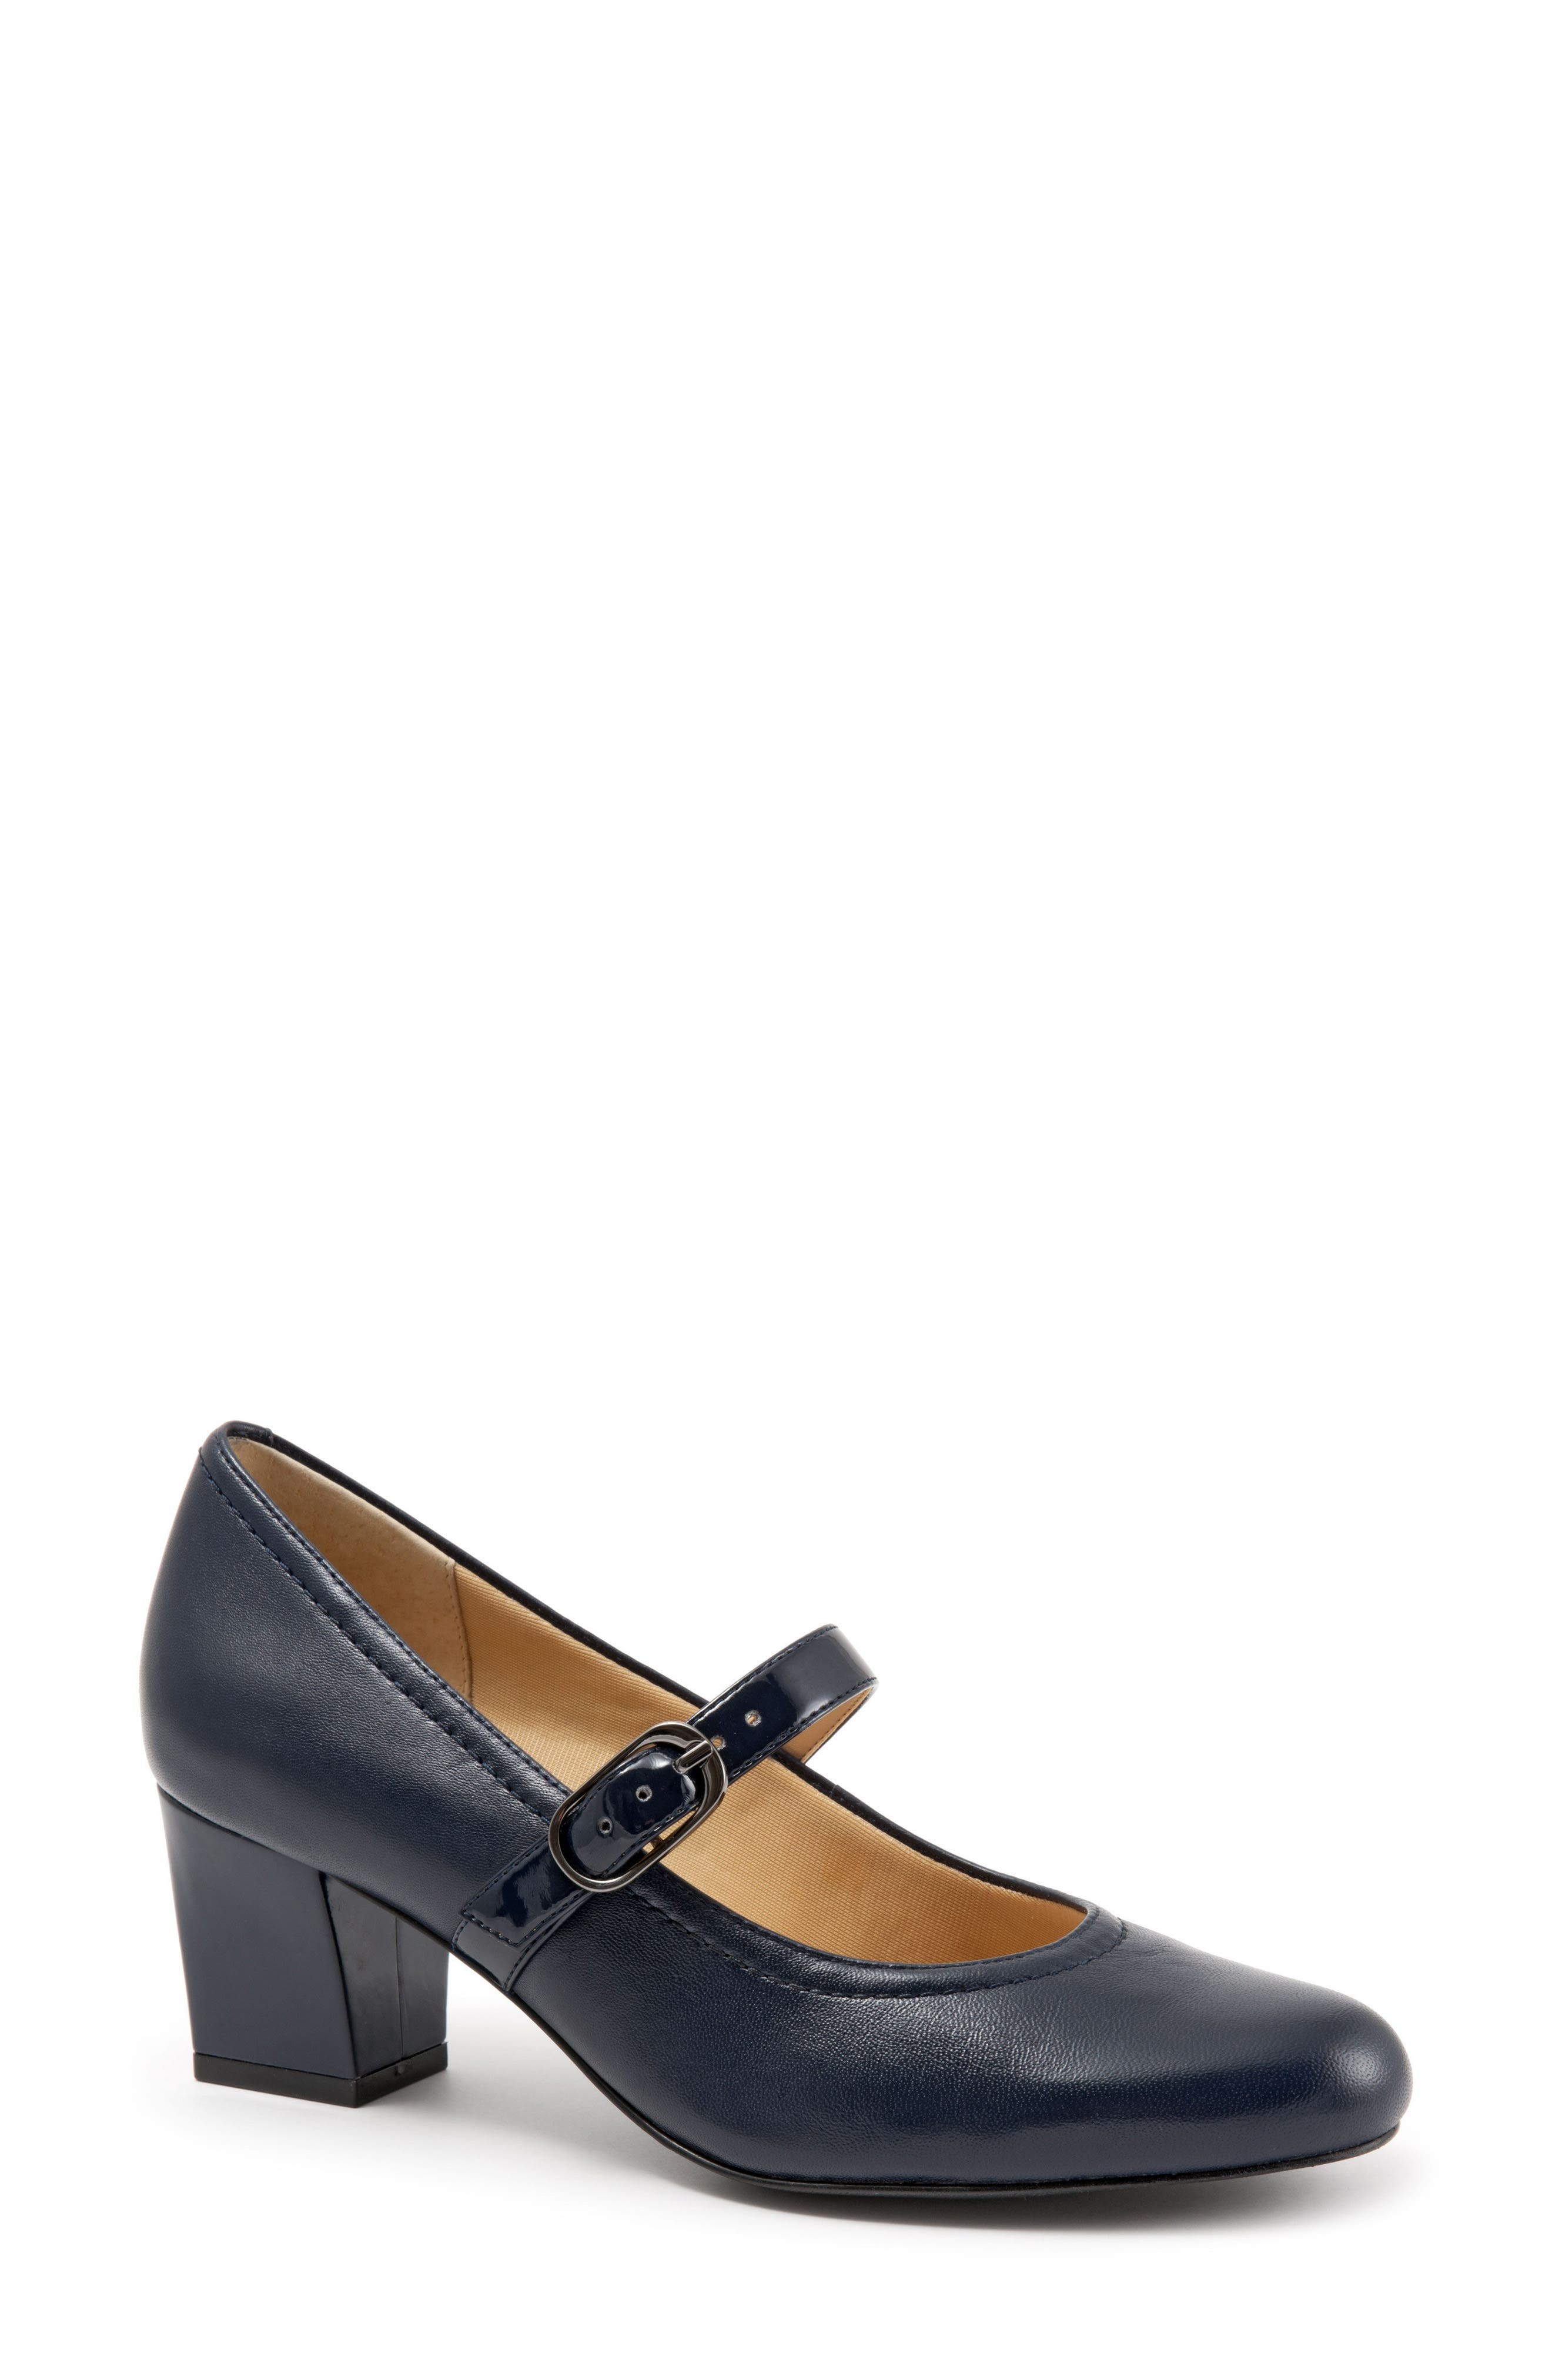 'Candice' Mary Jane Pump,                         Main,                         color, NAVY LEATHER